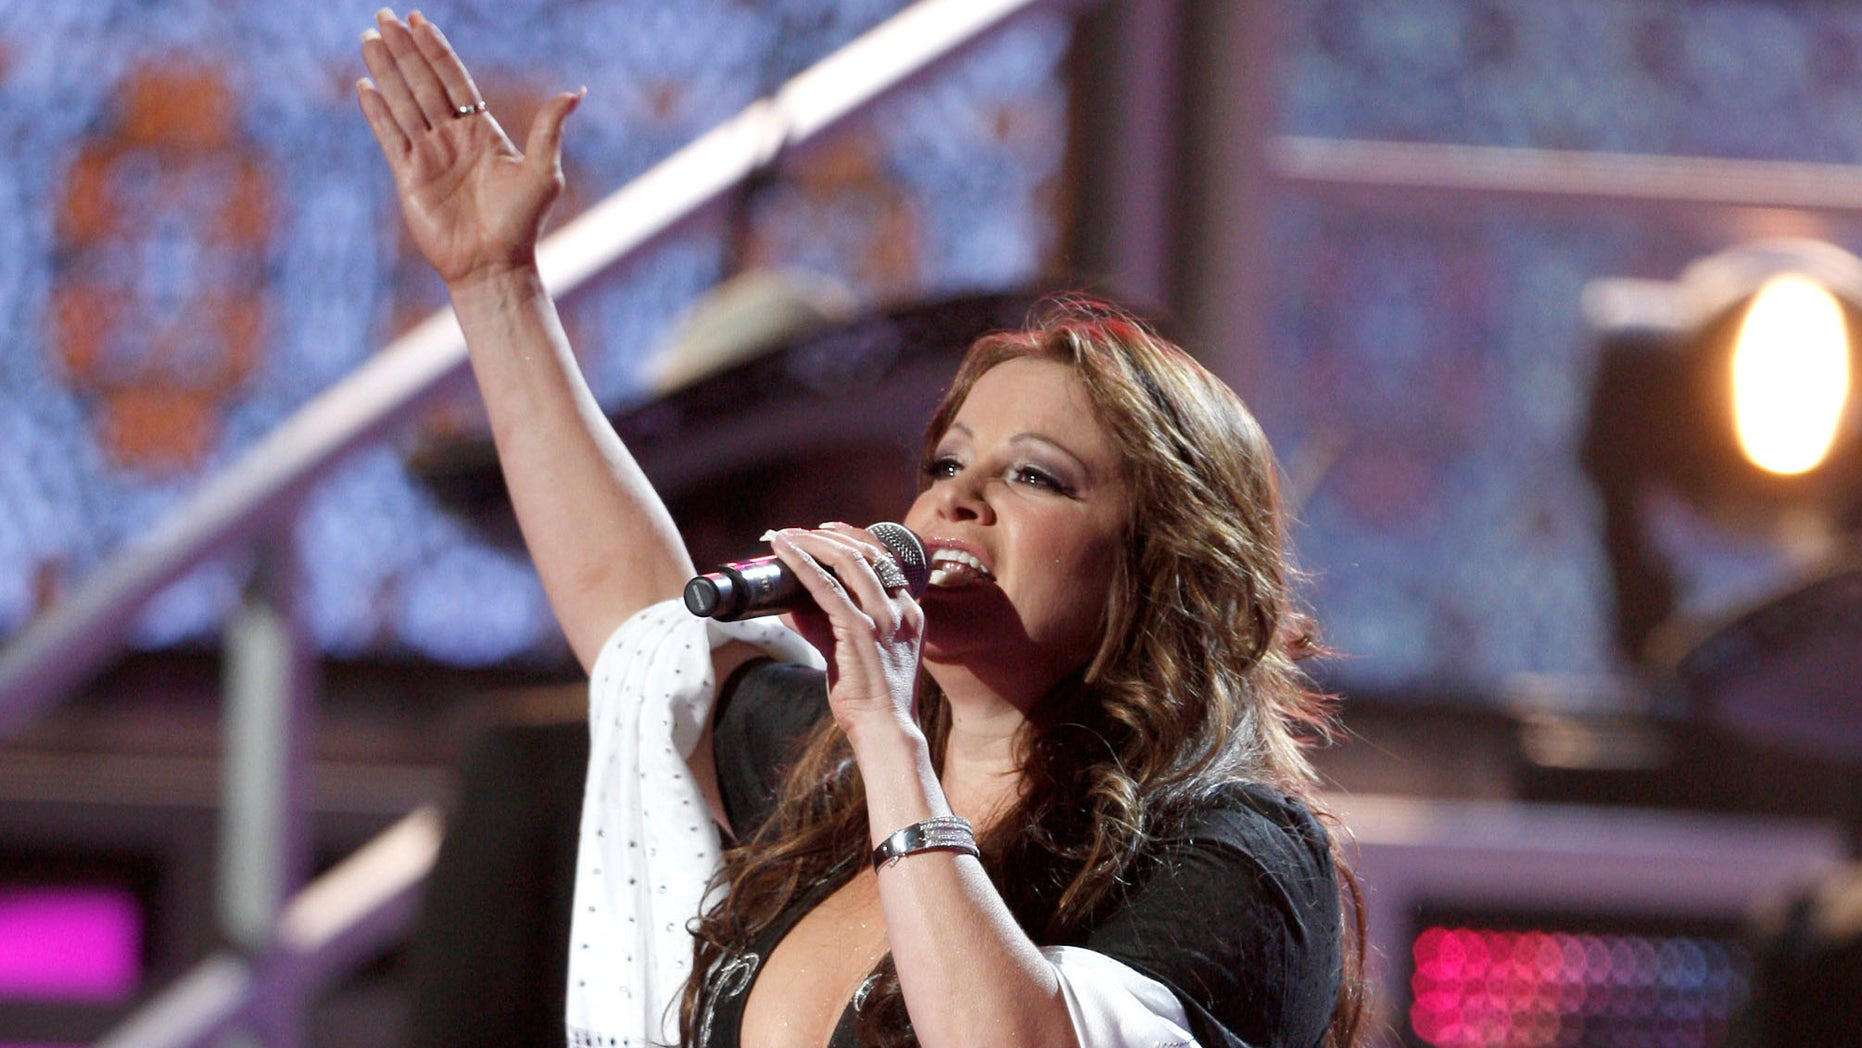 HOUSTON - NOVEMBER 13:  Singer Jenni Rivera performs onstage during the 9th annual Latin GRAMMY awards held at the Toyota Center on November 13, 2008 in Houston, Texas.  (Photo by Kevin Winter/Getty Images)